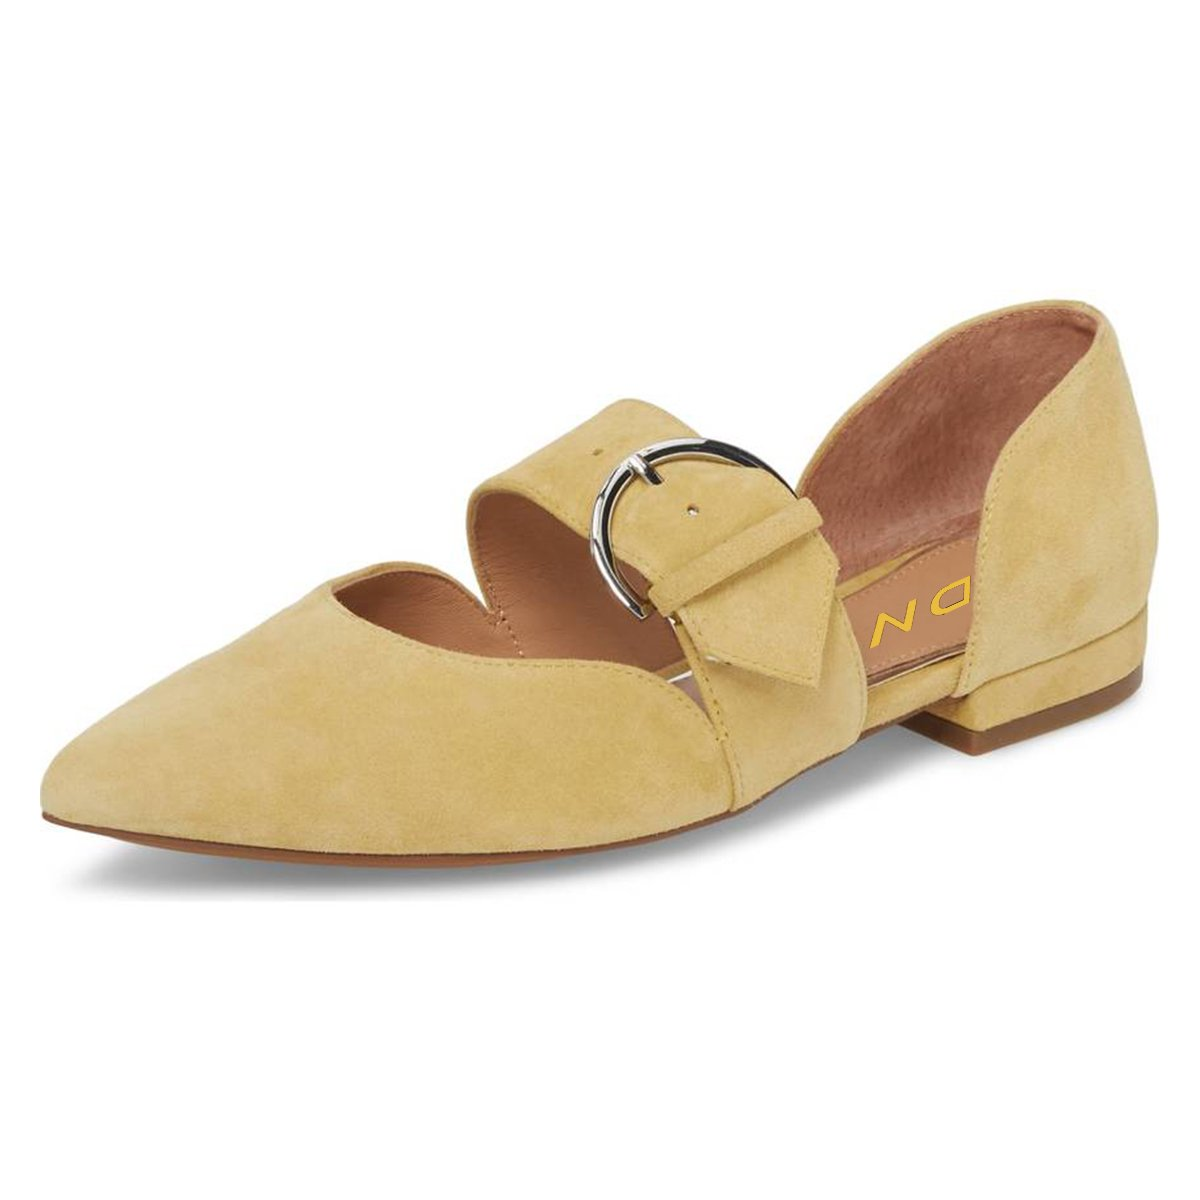 YDN Women's Pointed Toe Mary Jane Flats Slip On D'Orsay Pumps Low Heels Office Shoes B07B4CSJ6X 8.5 B(M) US|Yellow